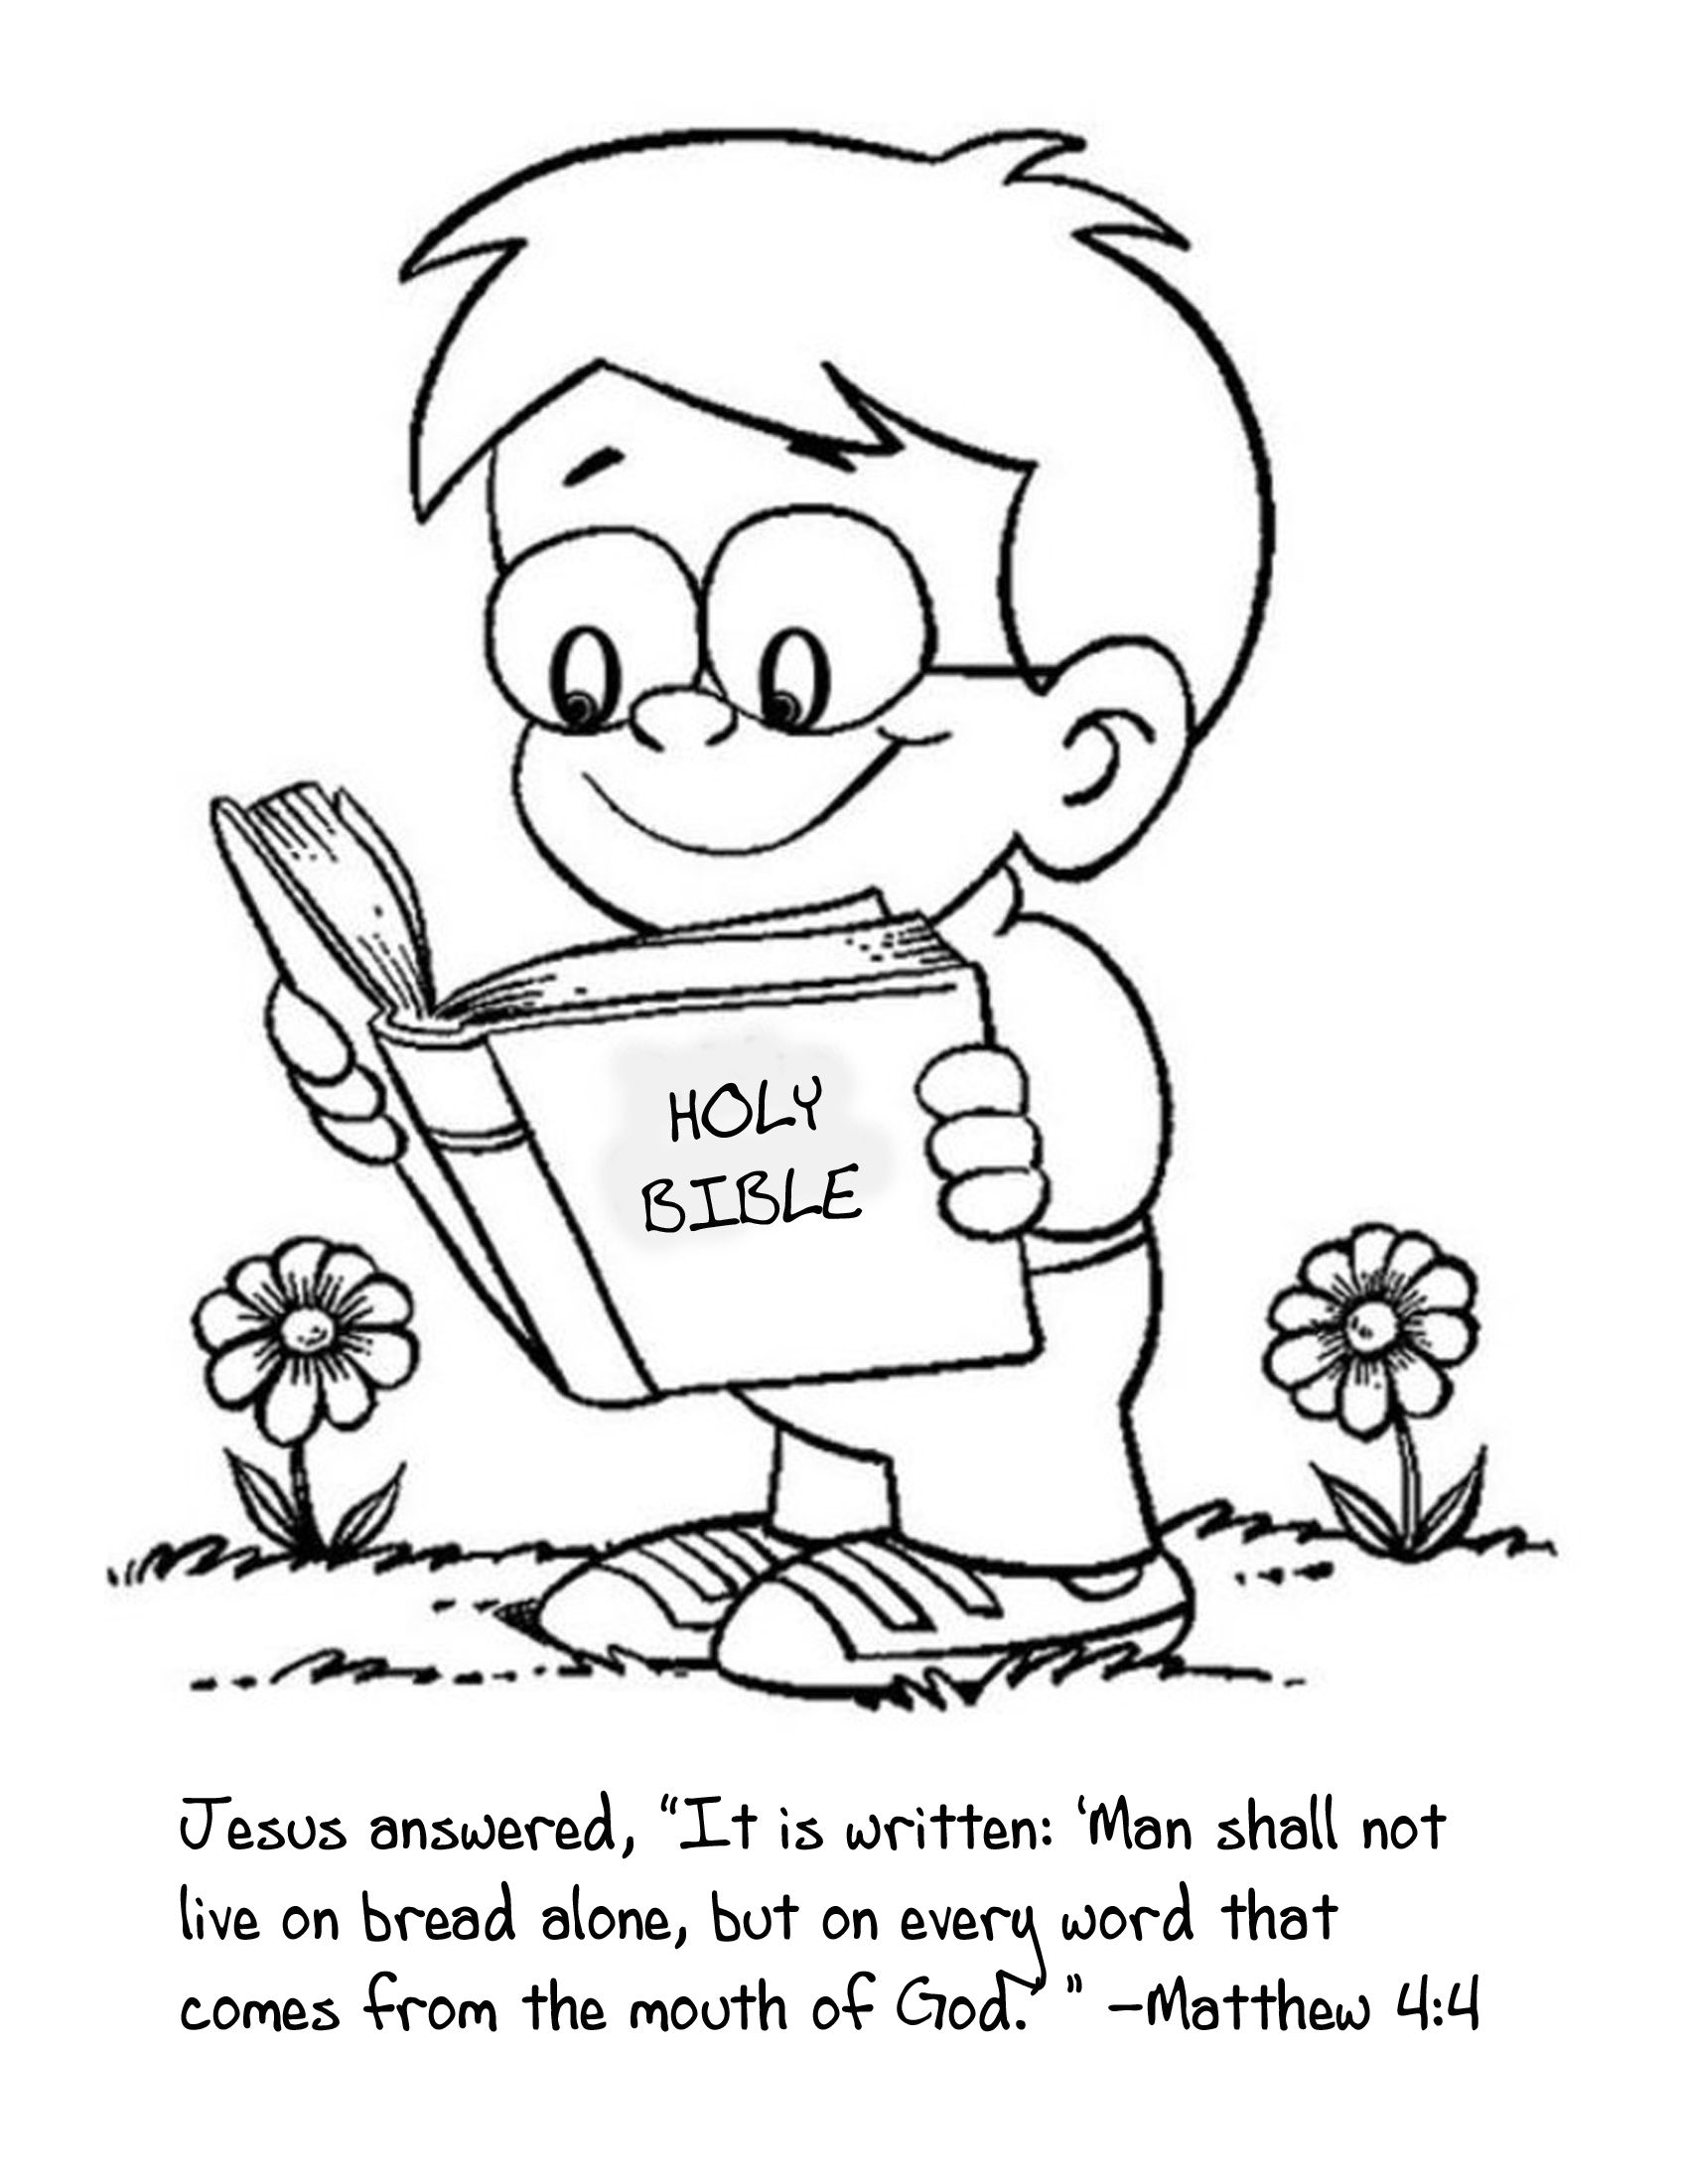 cute coloring page for the kids to color as we talk about reading - Cute Coloring Pics